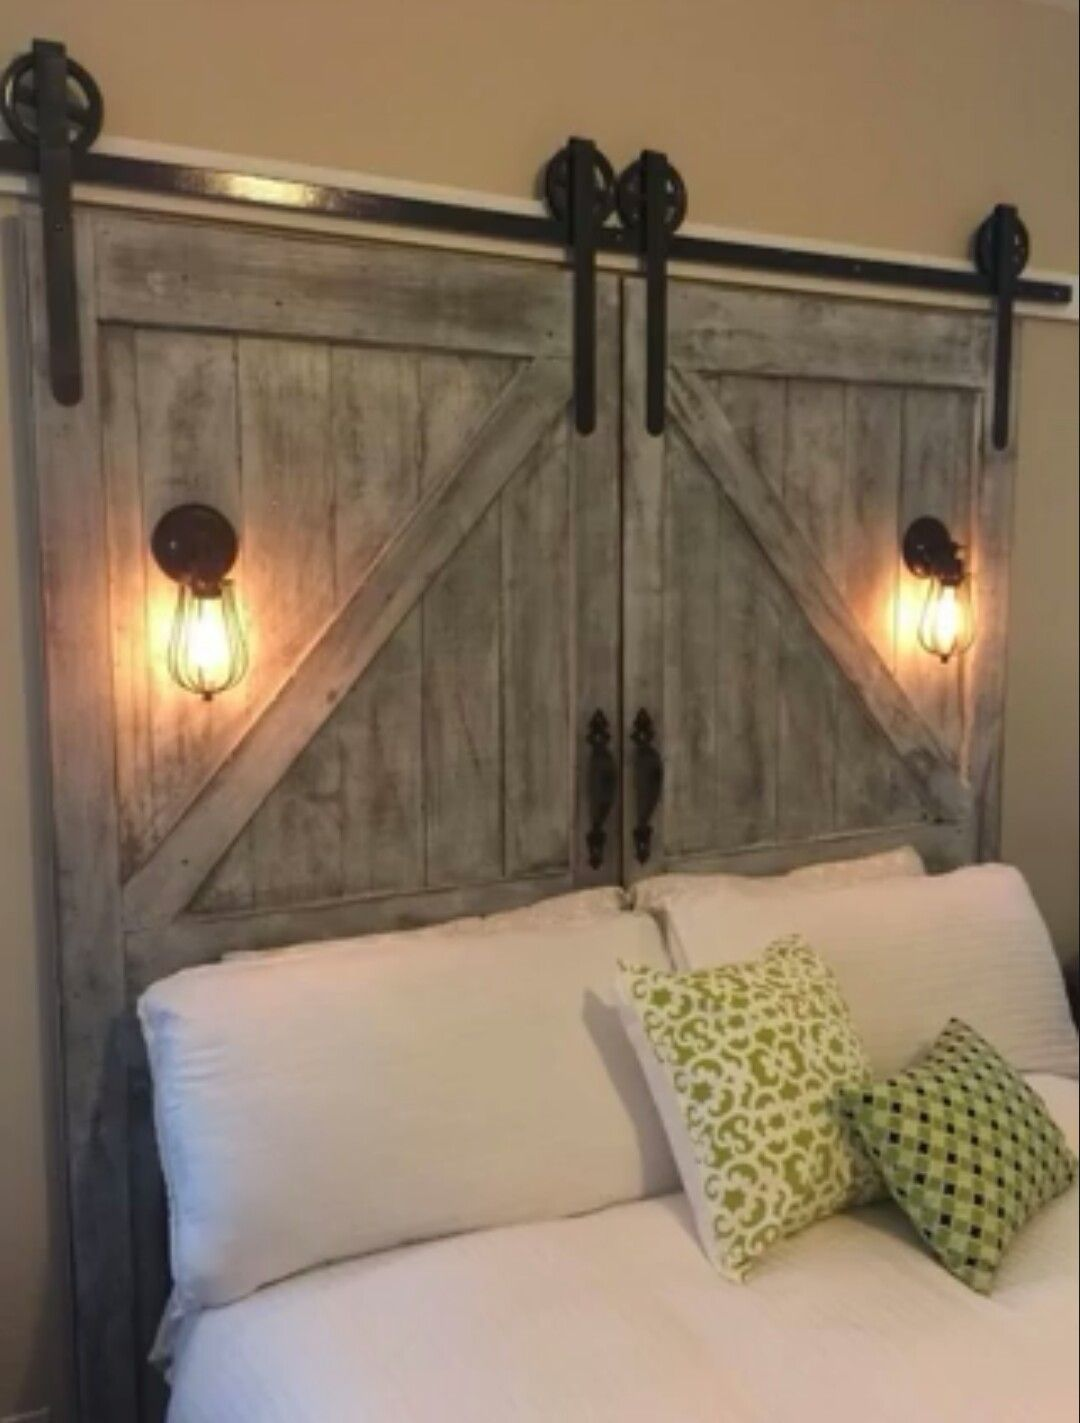 Sliding Barn Doors Great For A Bed In Front Of Window Acts As Headboard When Closed Would Also Be Fun Pai Diy Barn Door Barndoor Headboard Cheap Home Decor